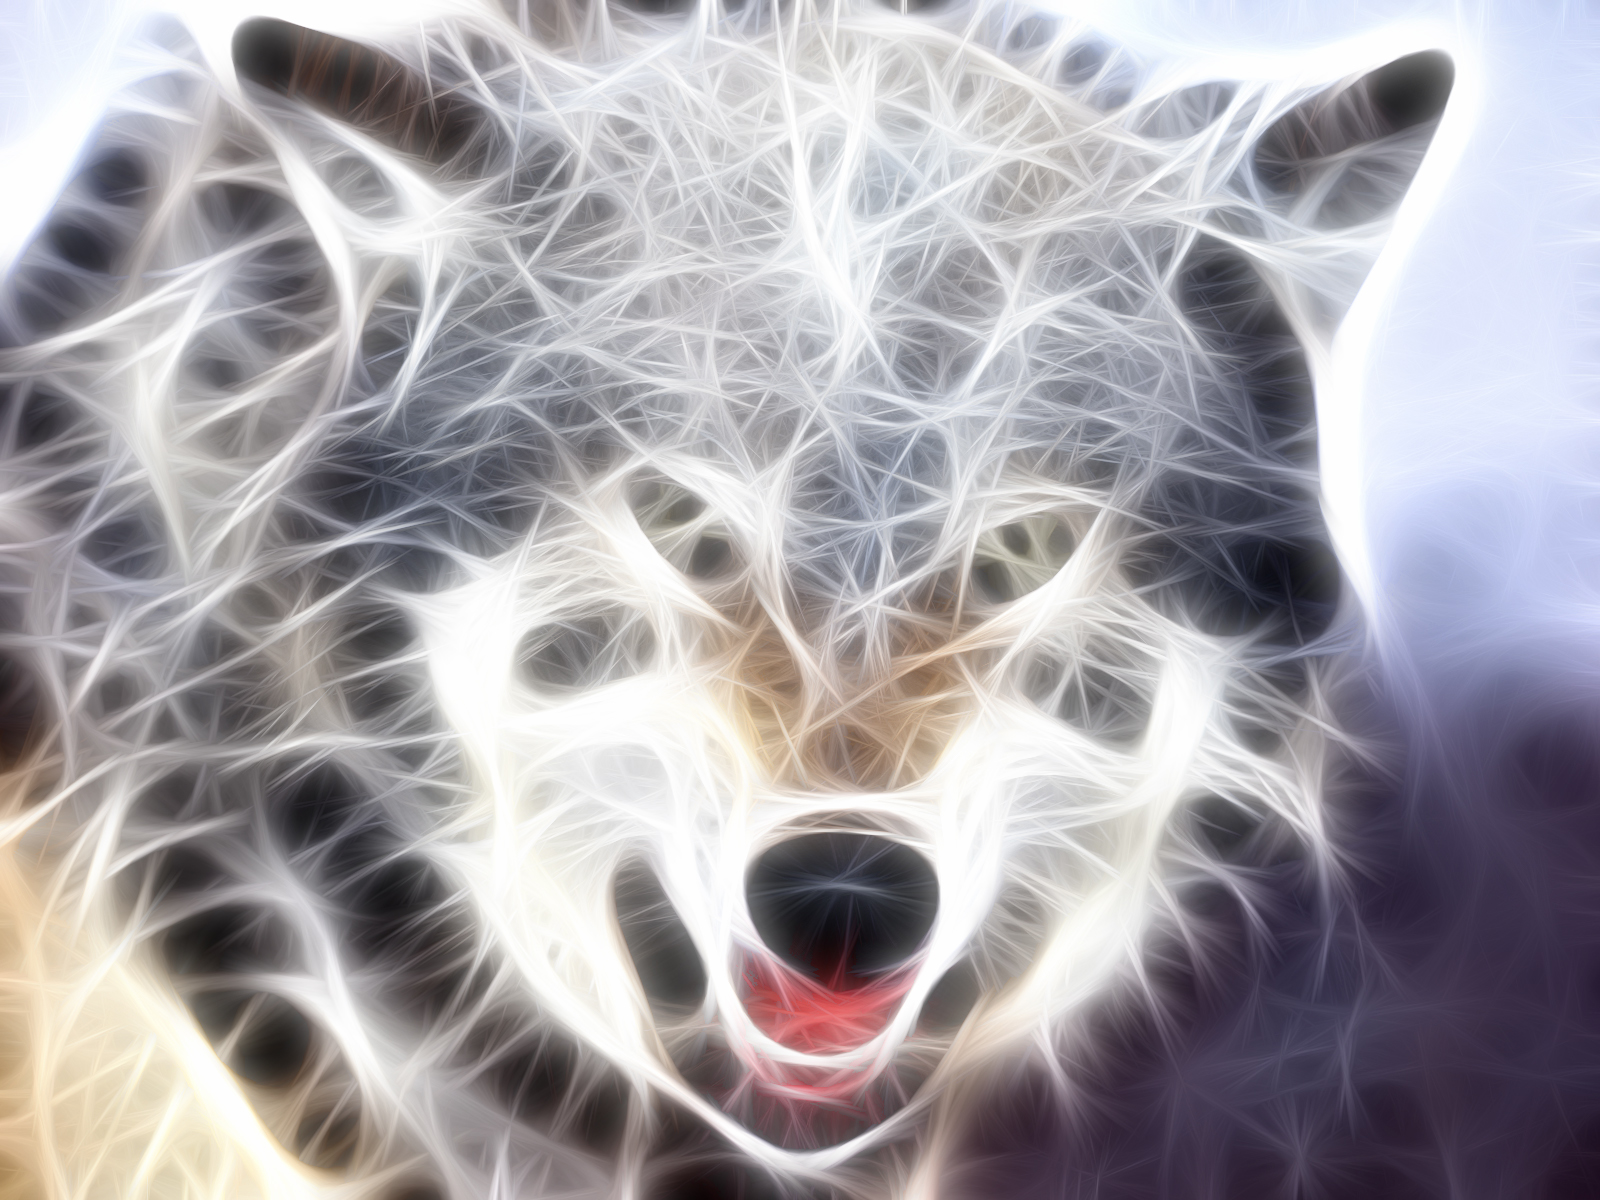 Tiger Animal Wallpaper Nice Animals Fractal All About Photo